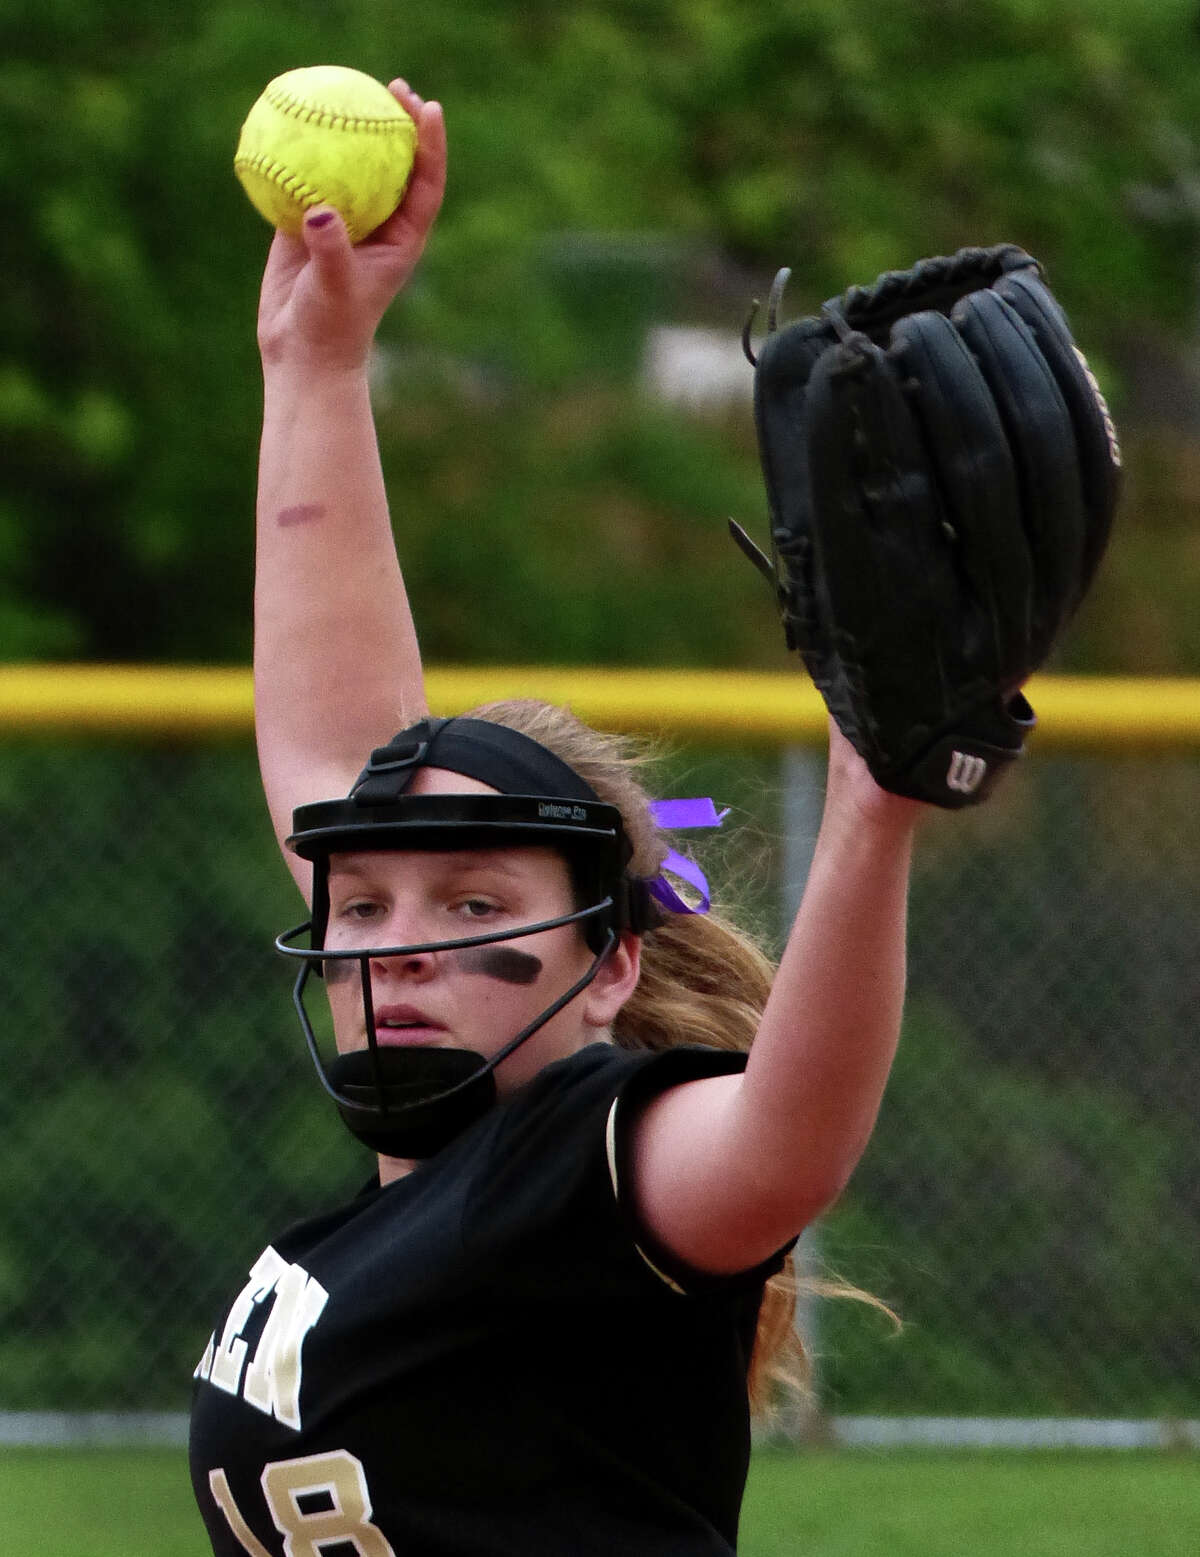 Jonathan Law's pitcherJenna Bernard, during softball action against Foran in Milford, Conn. on Wednesday May 14, 2014. Law went on to beat cross-town rival Foran 4-0 in the eighth inning.